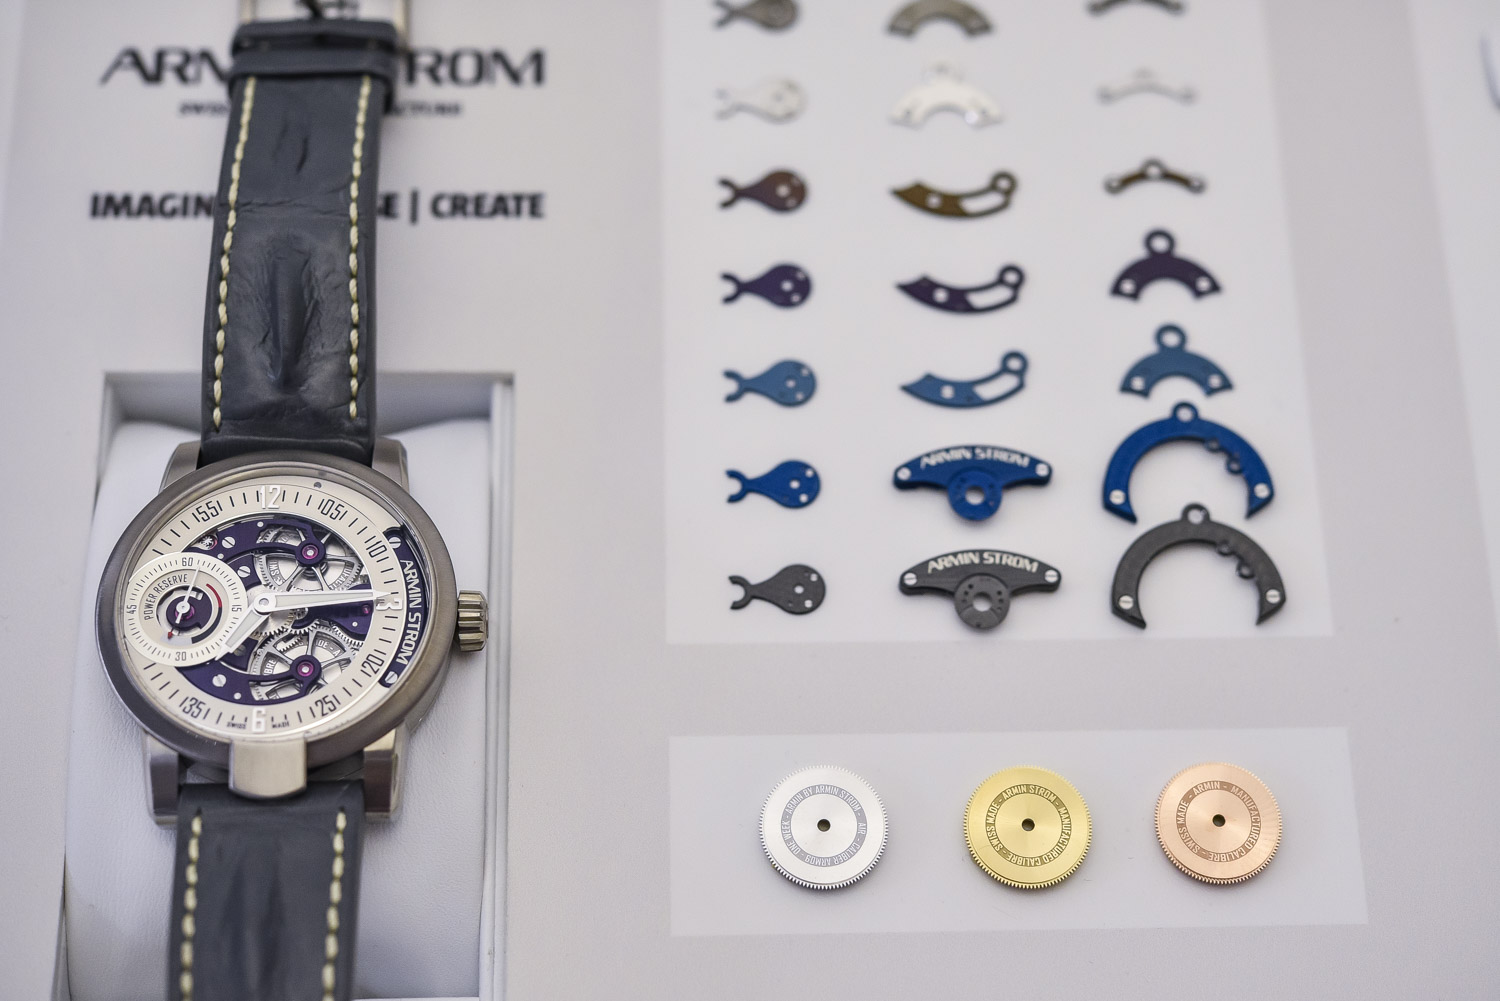 Armin Strom Watch Configurator - Top 10 Baselworld 2017